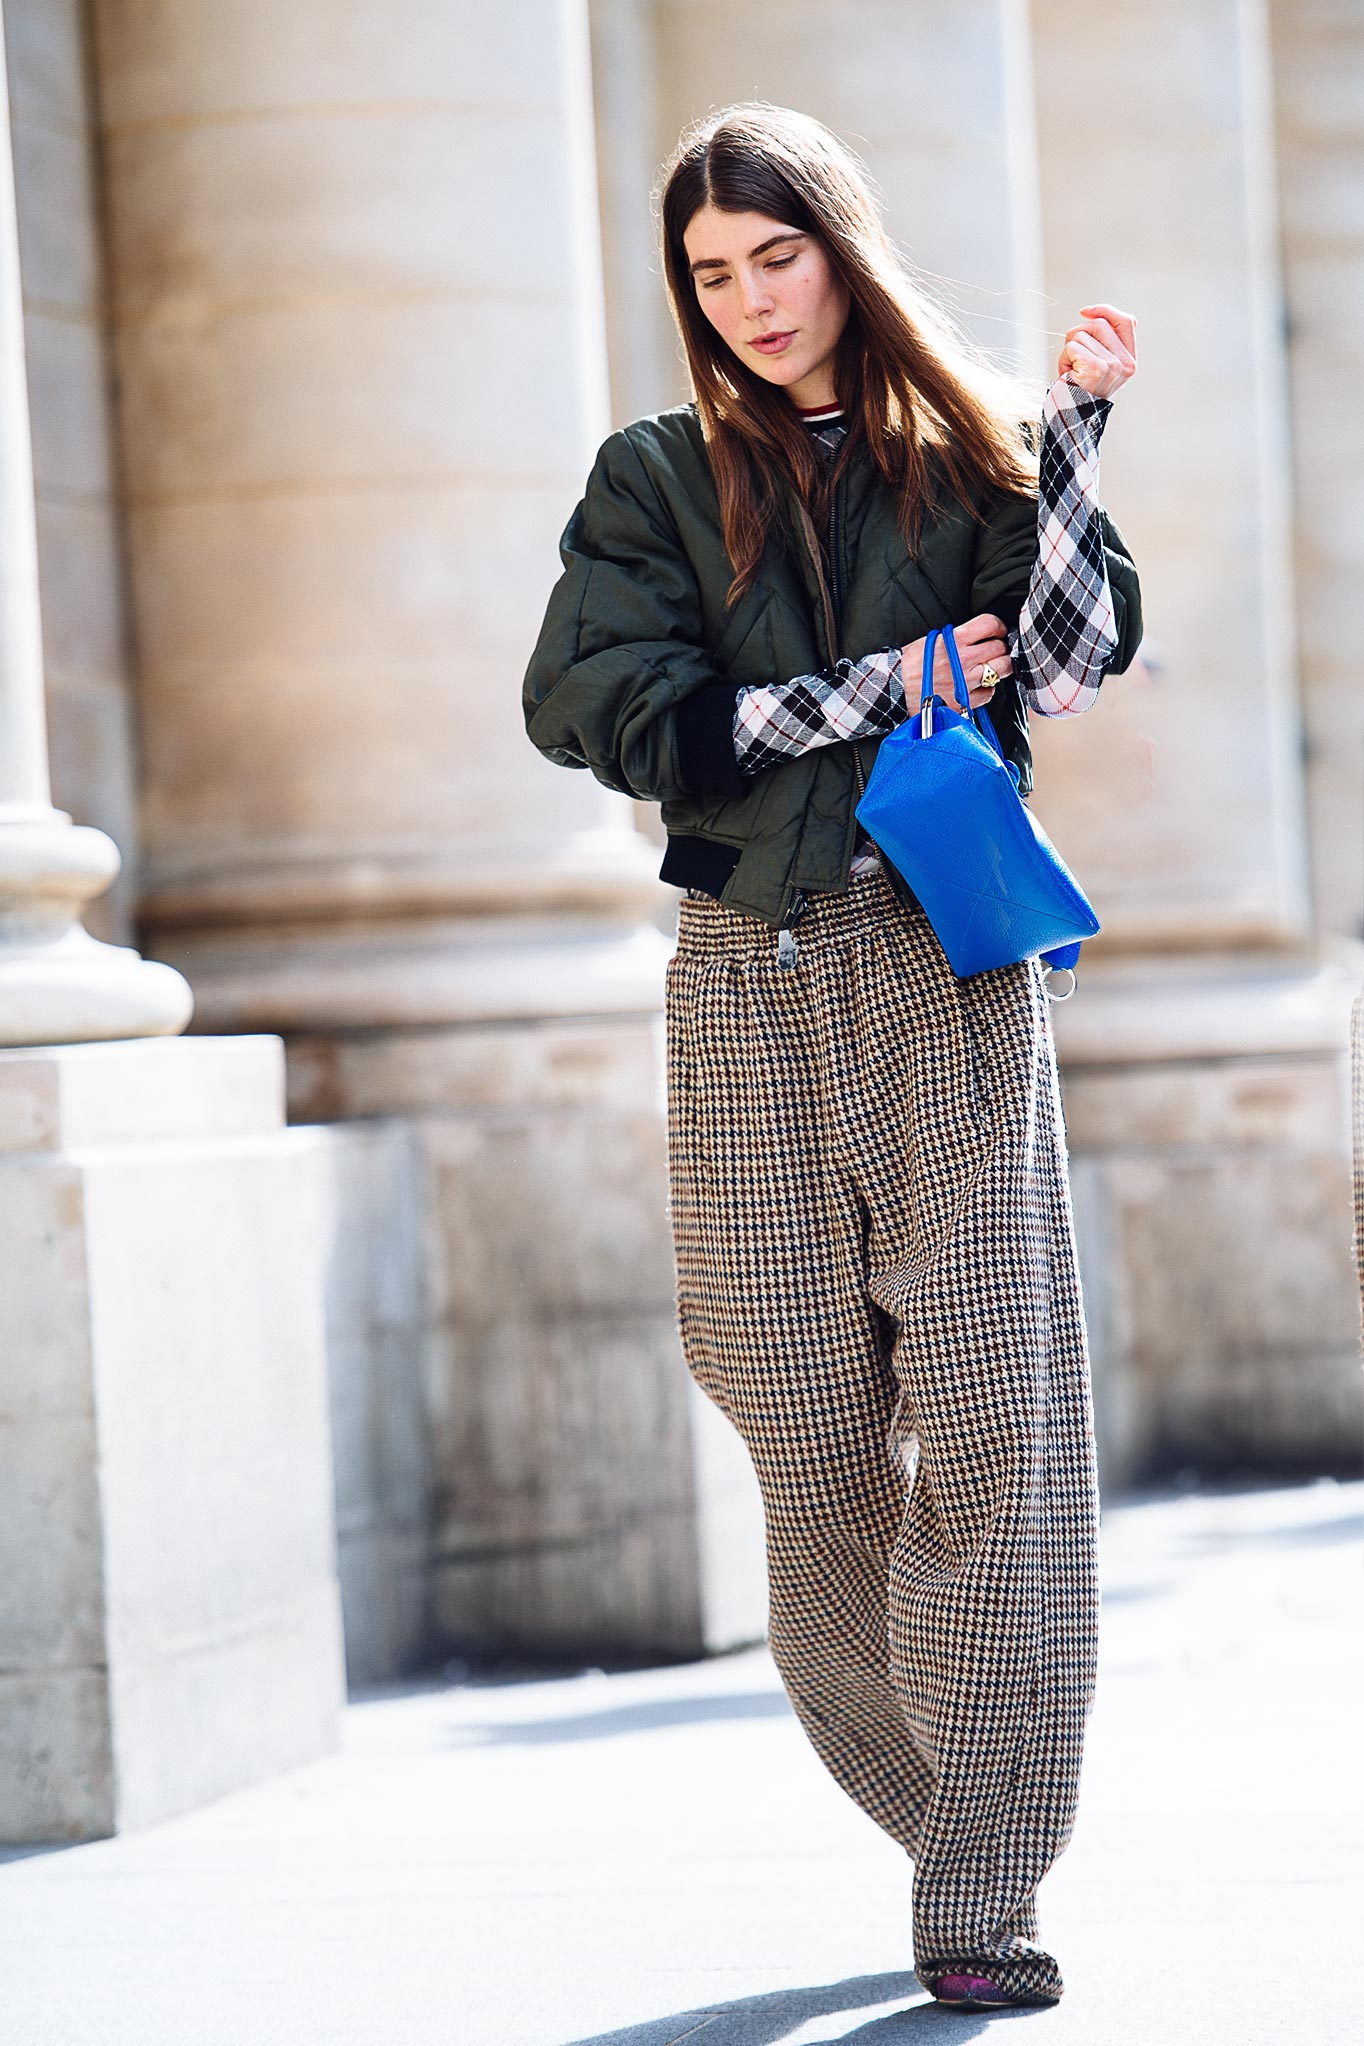 Ursina Gysi at Paris Fashion Week Fall/Winter 2015